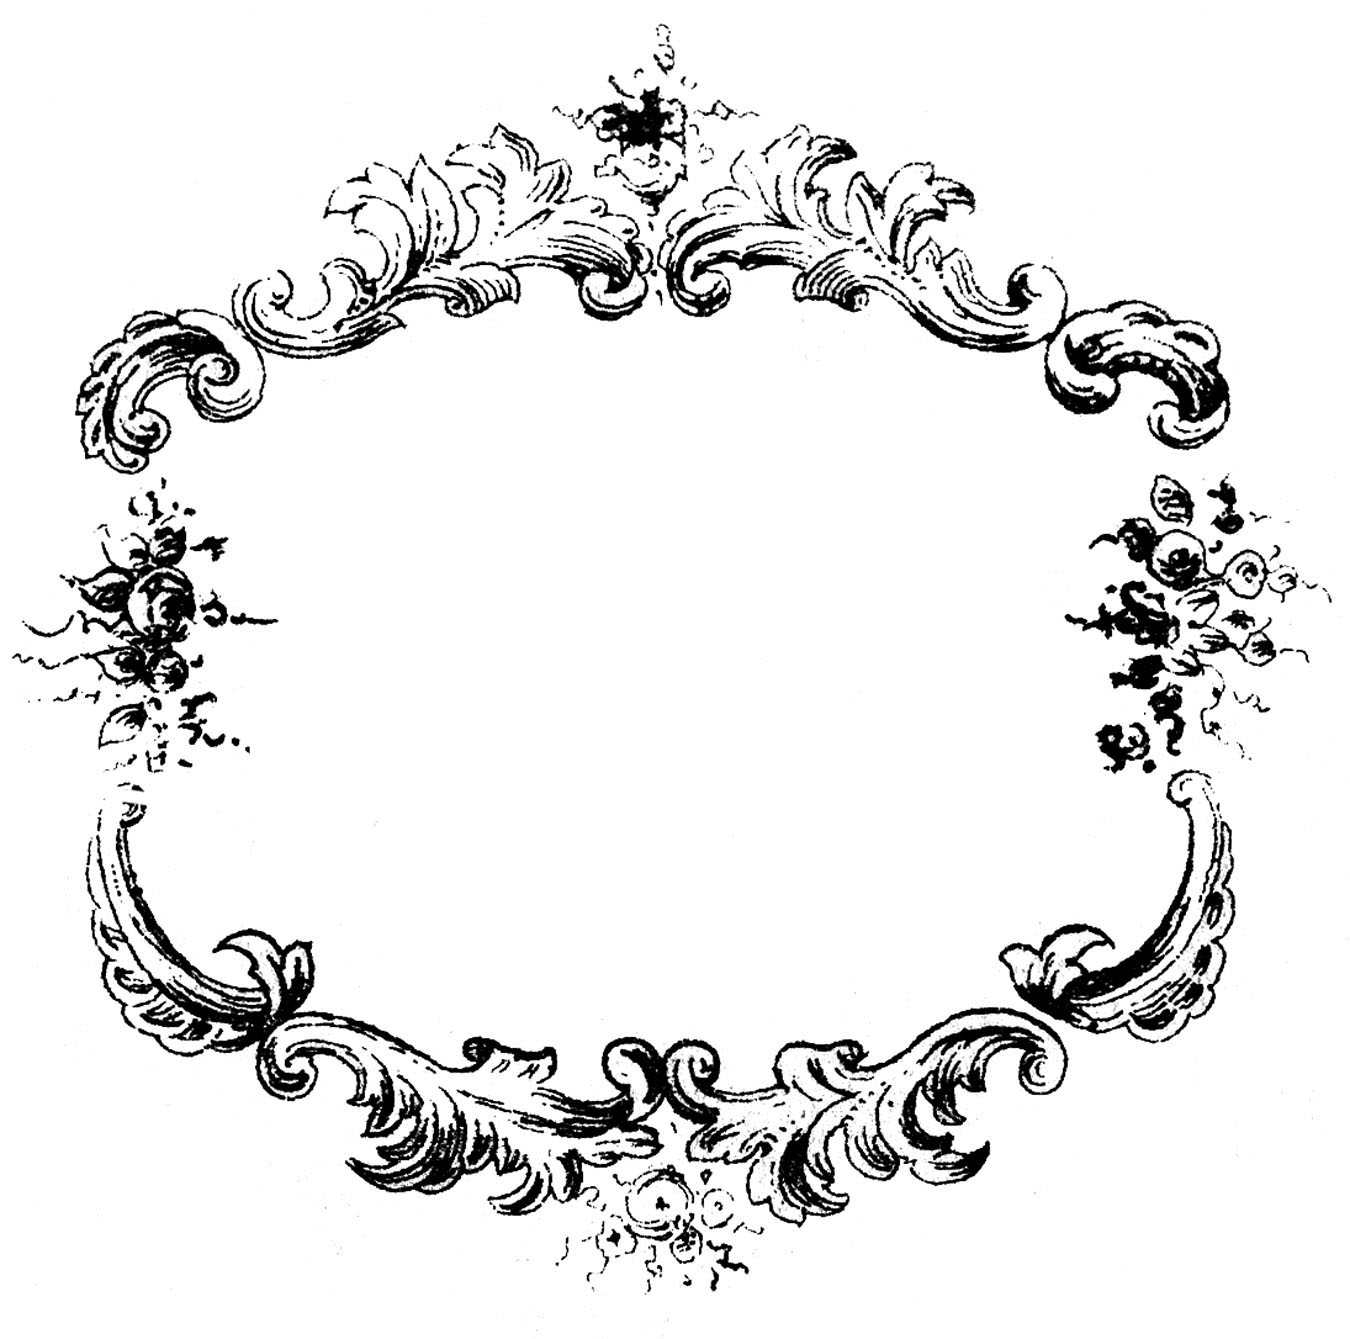 Free French Label Cliparts, Download Free Clip Art, Free Clip Art on.